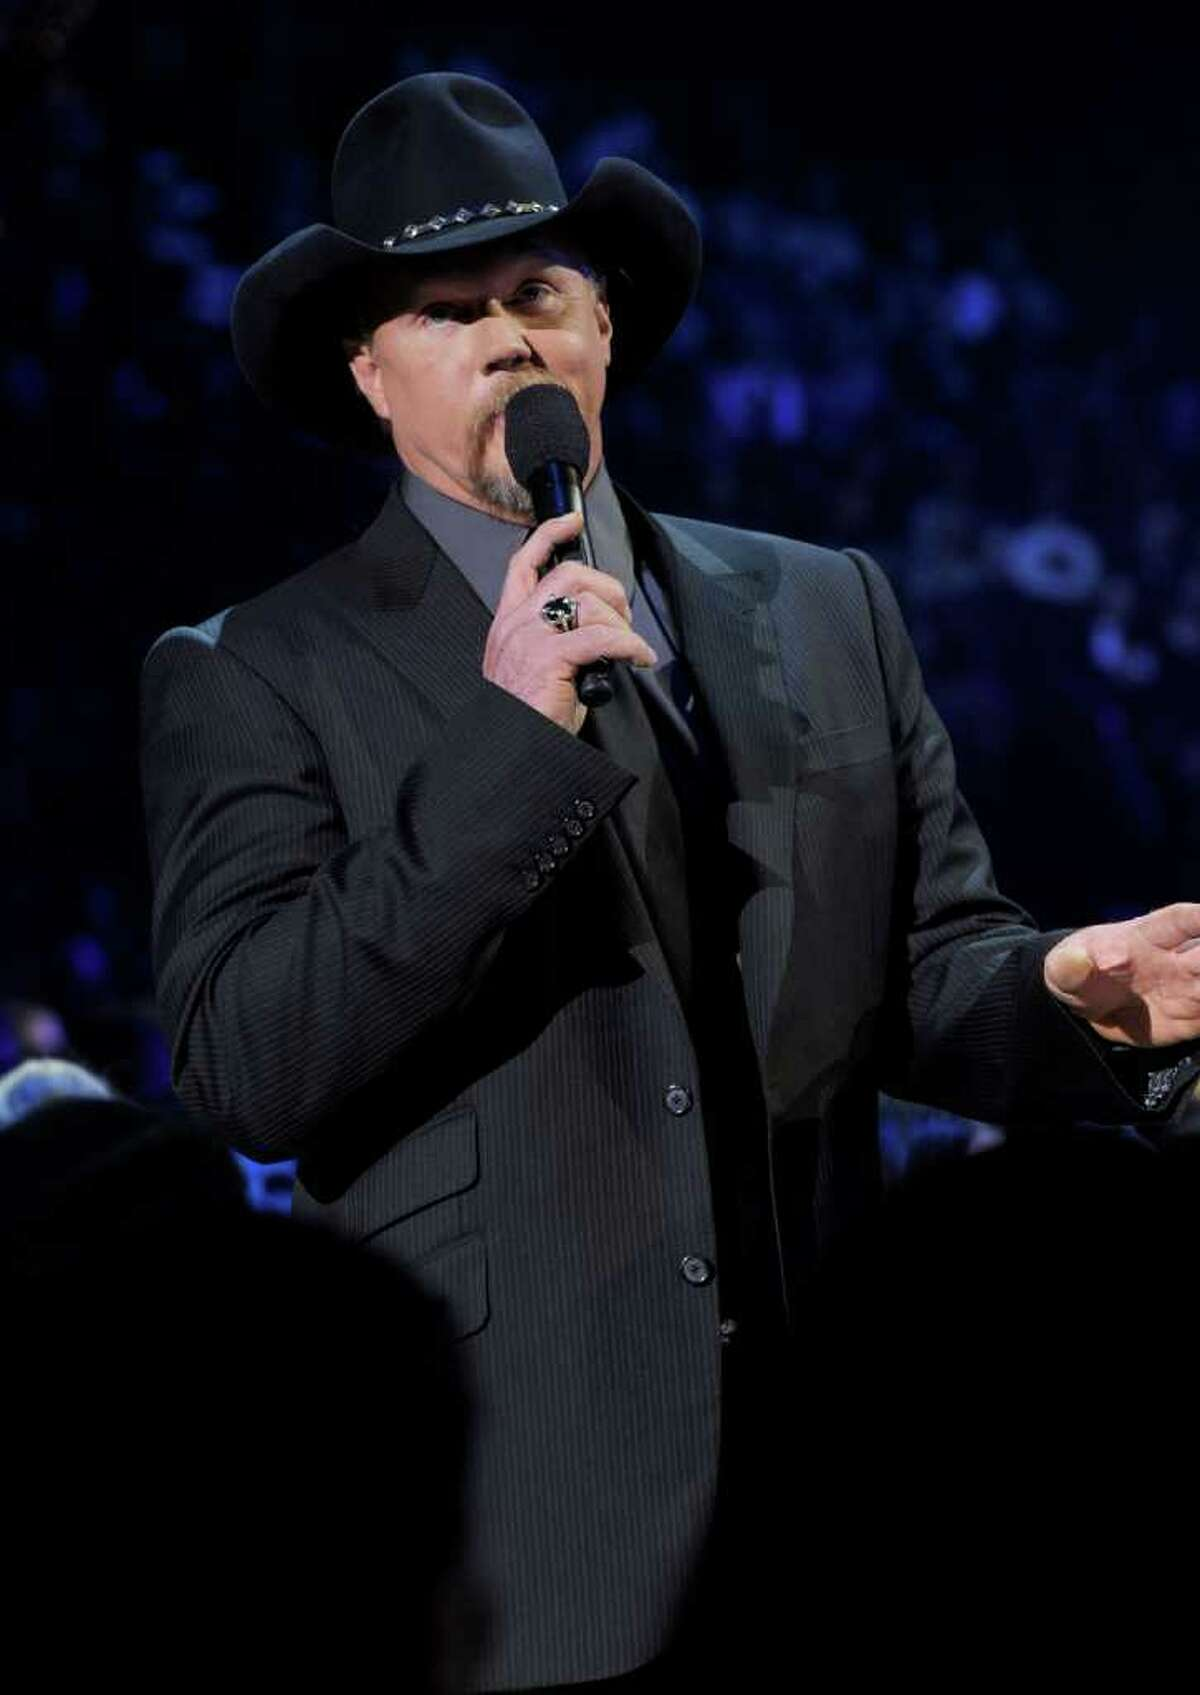 LAS VEGAS, NV - DECEMBER 06: Host Trace Adkins speaks onstage during the American Country Awards 2010 held at the MGM Grand Garden Arena on December 6, 2010 in Las Vegas, Nevada. (Photo by Kevin Winter/Getty Images)